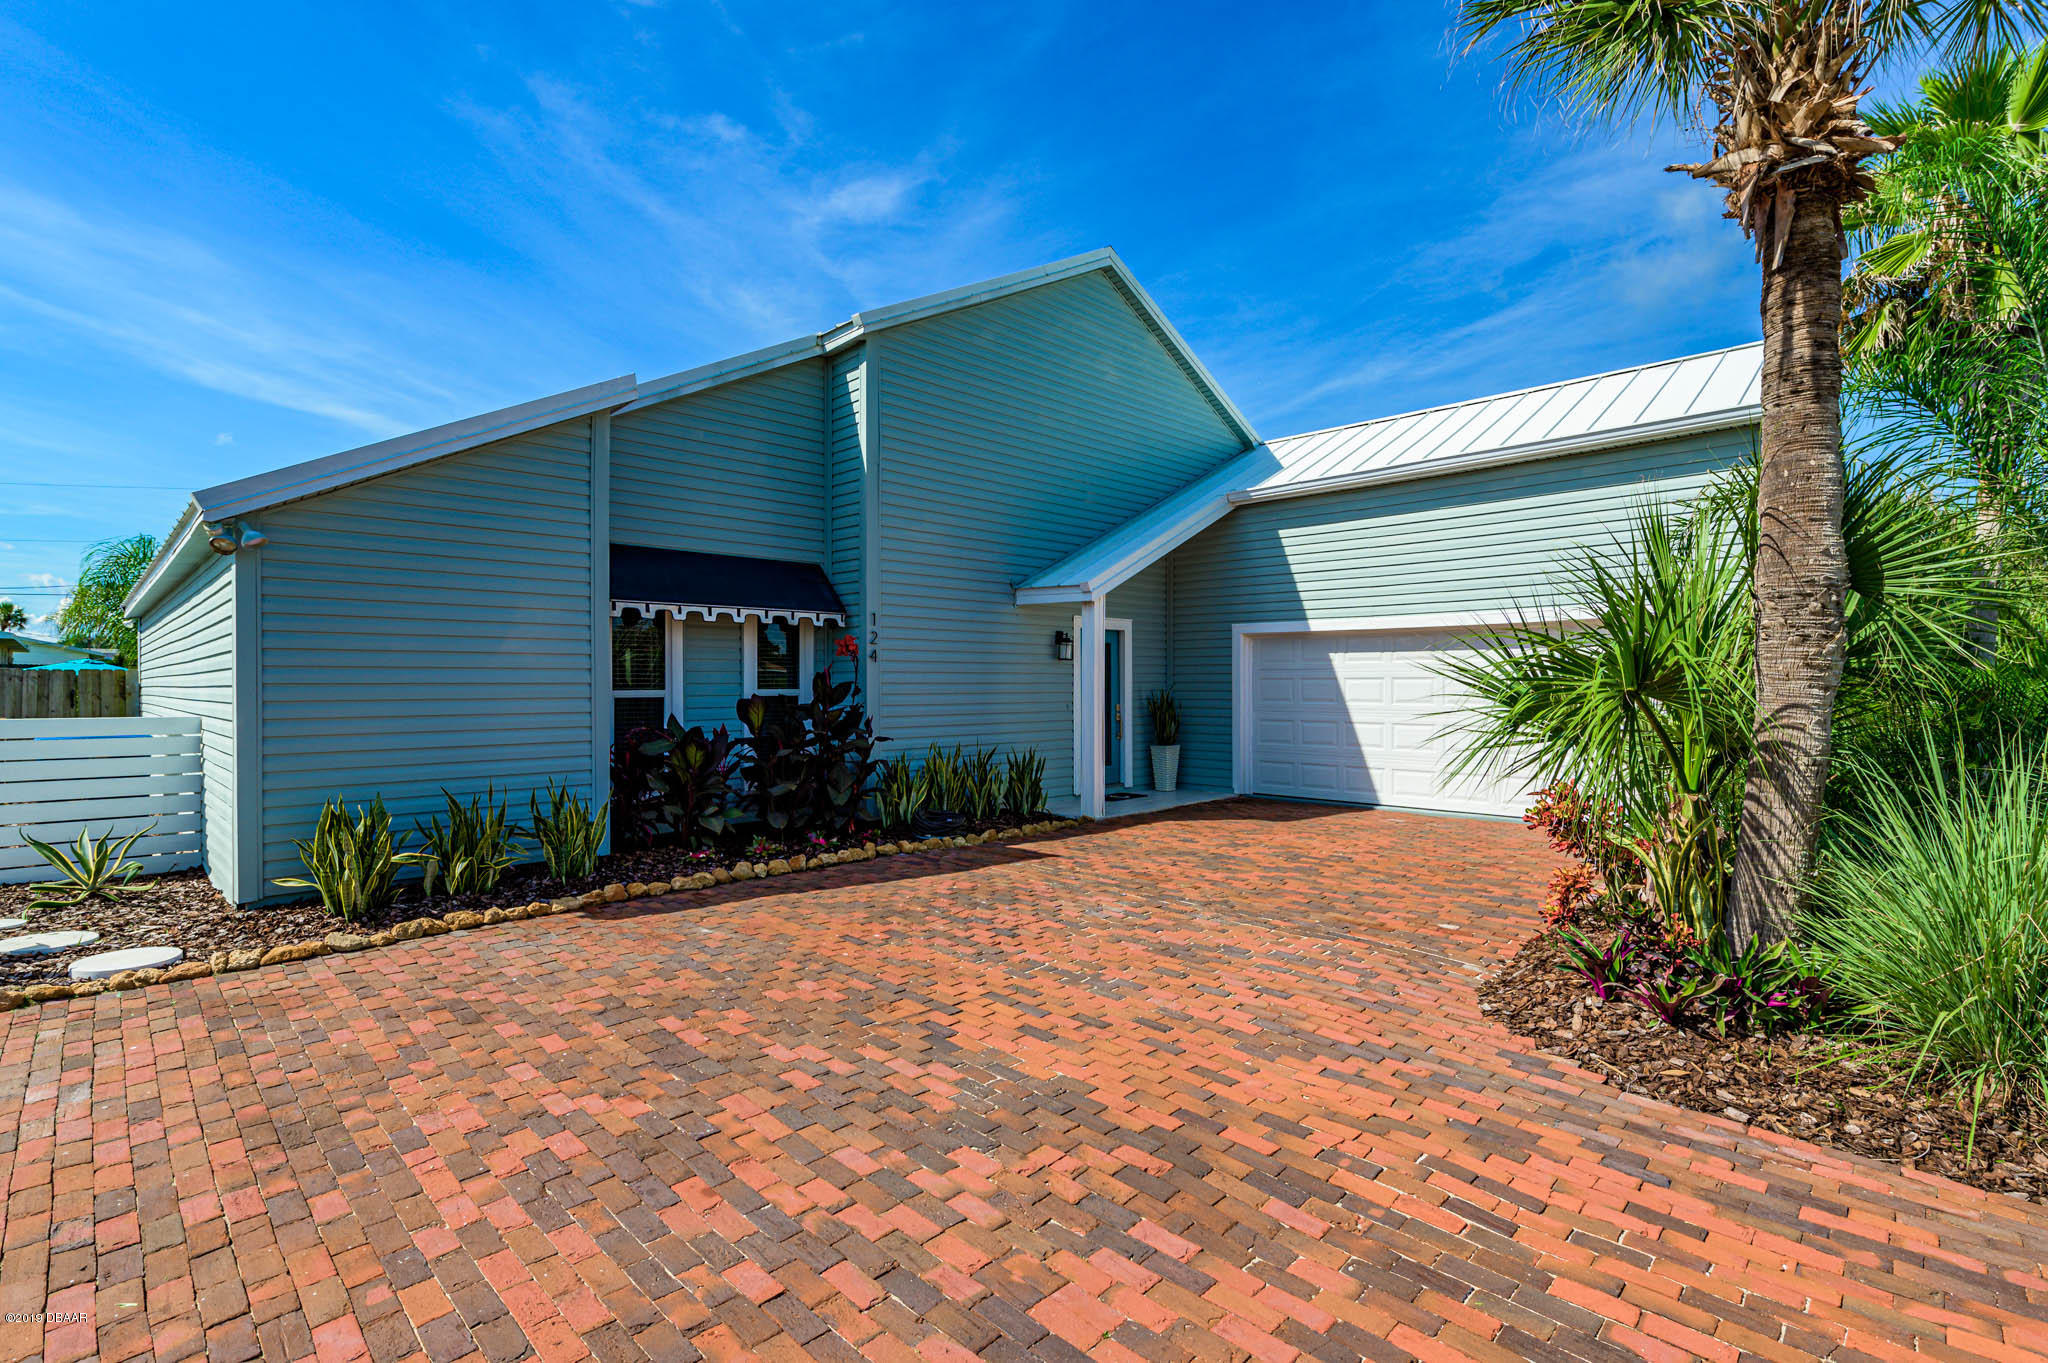 124 Mariners Drive, Ormond-By-The-Sea, Florida